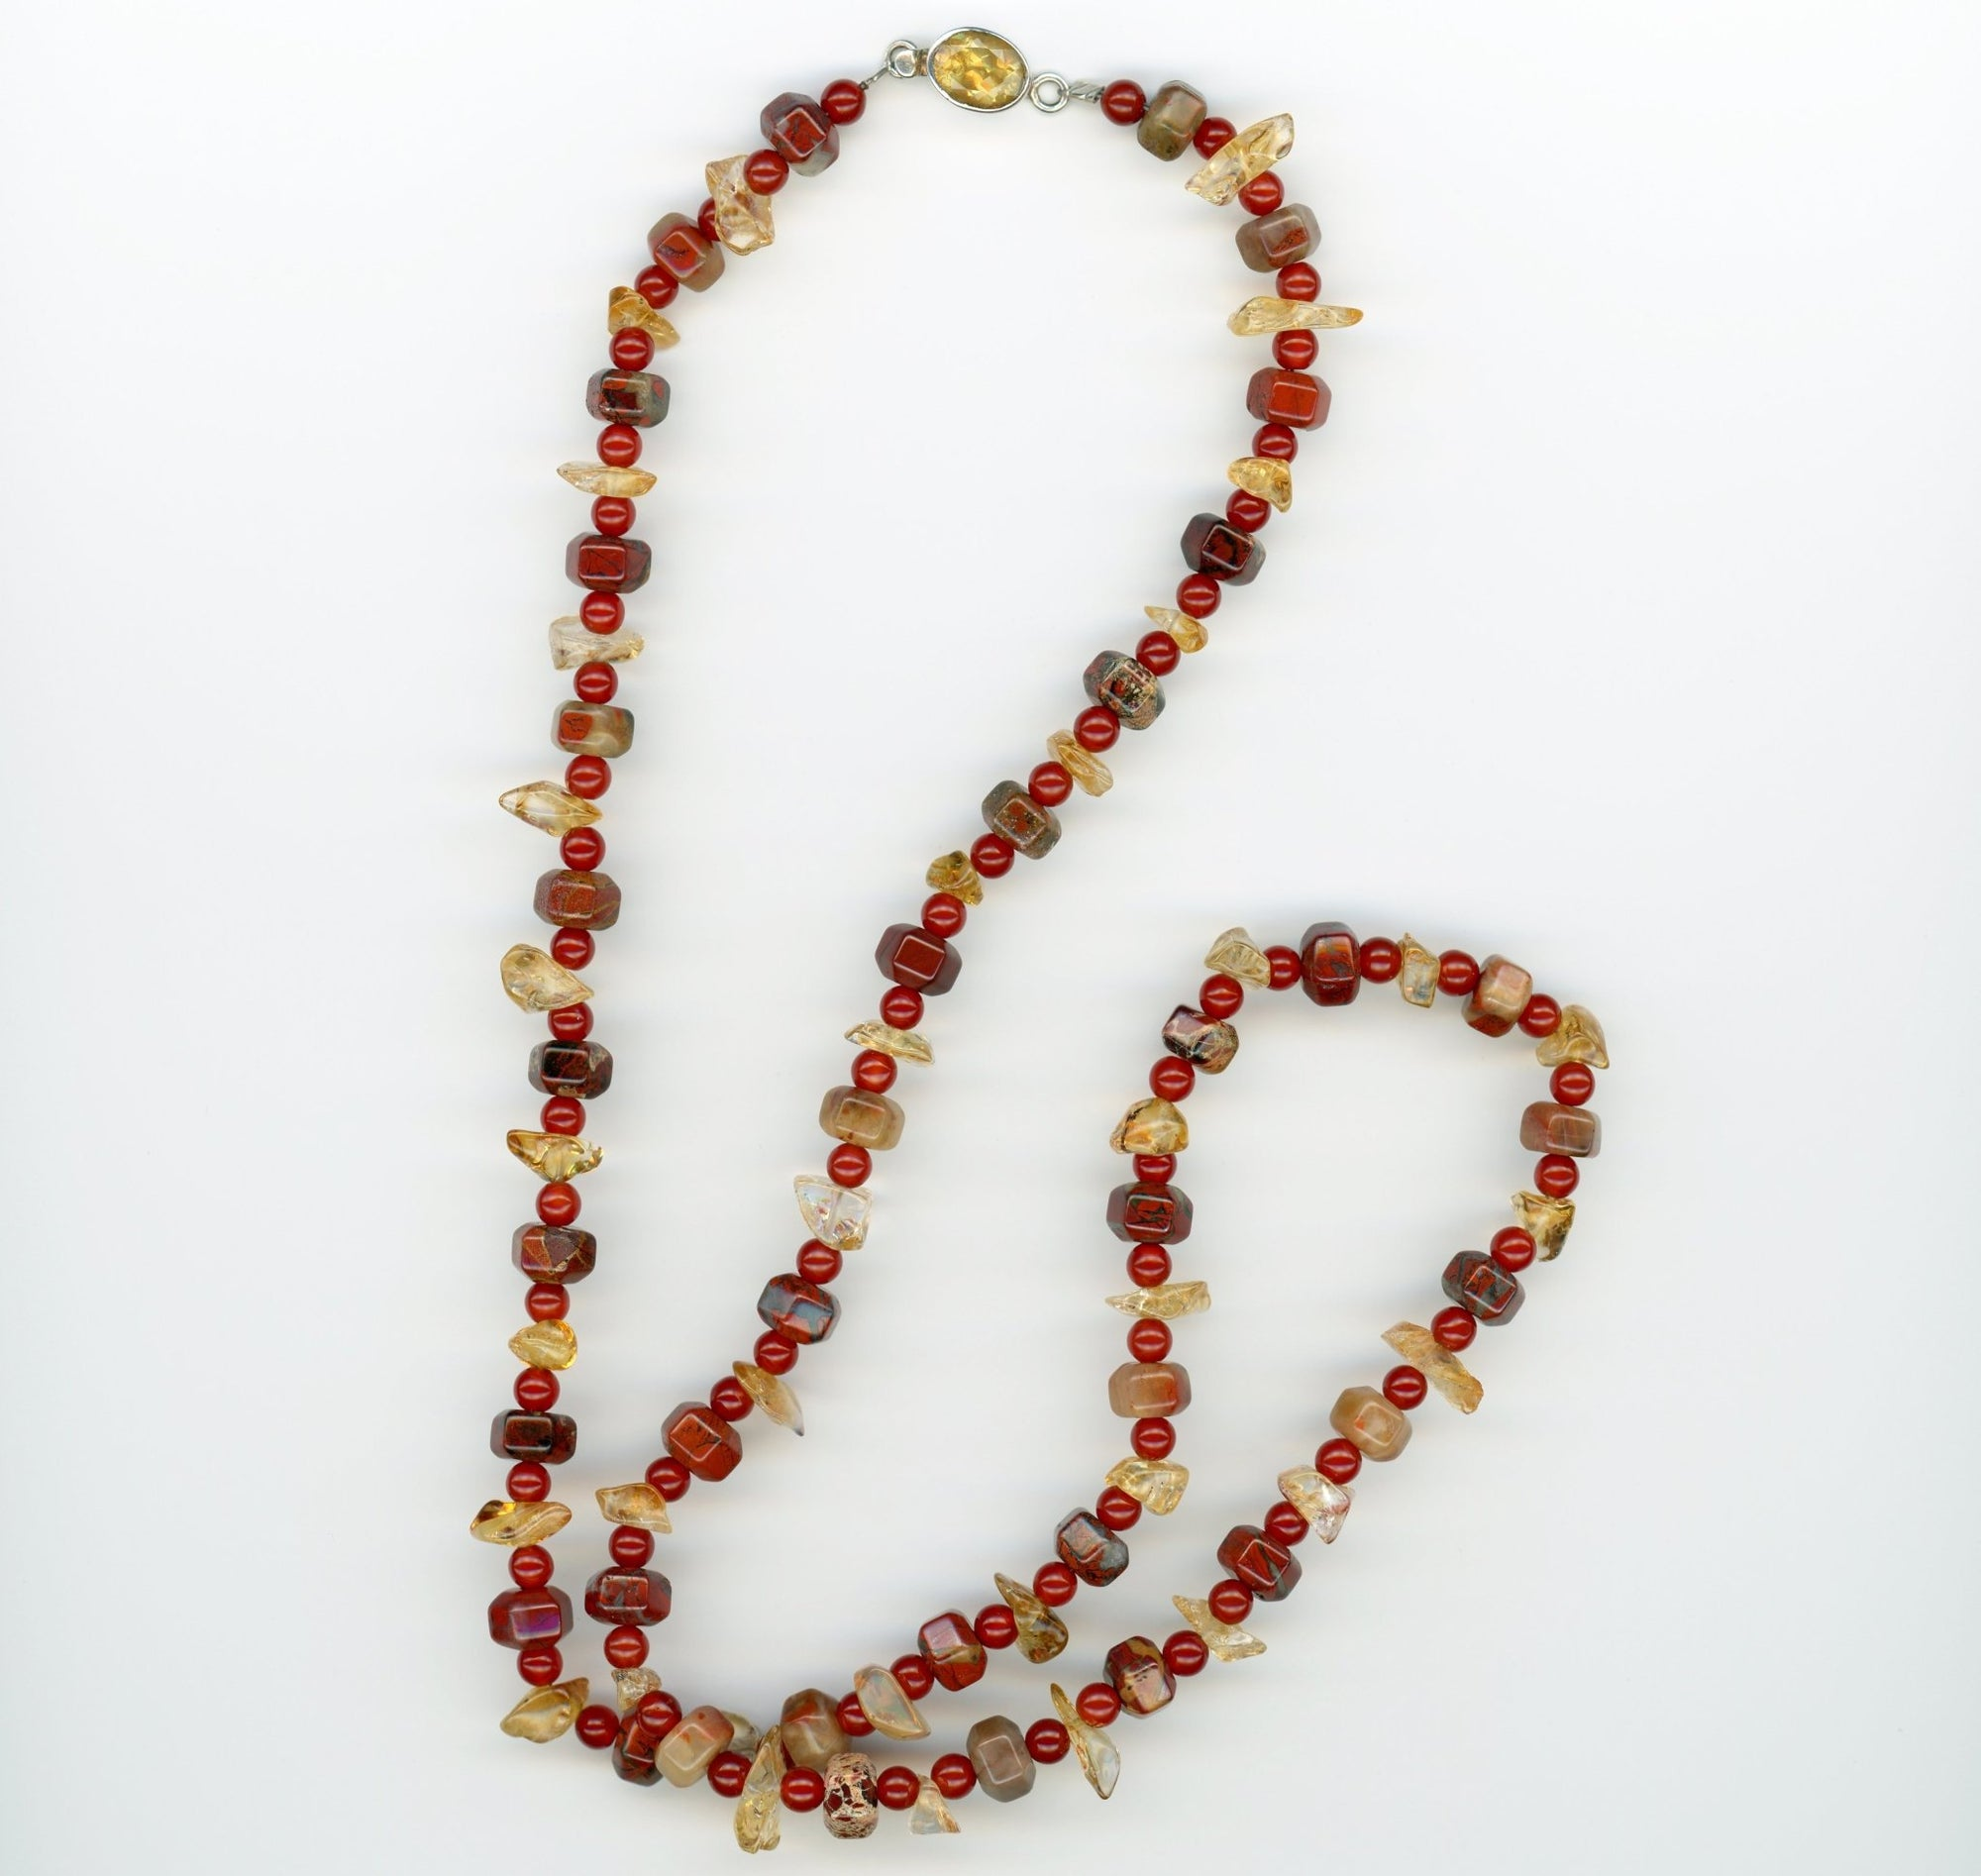 Brecciated Jasper, Citrine and Carnelian Necklace - UniqueCherie